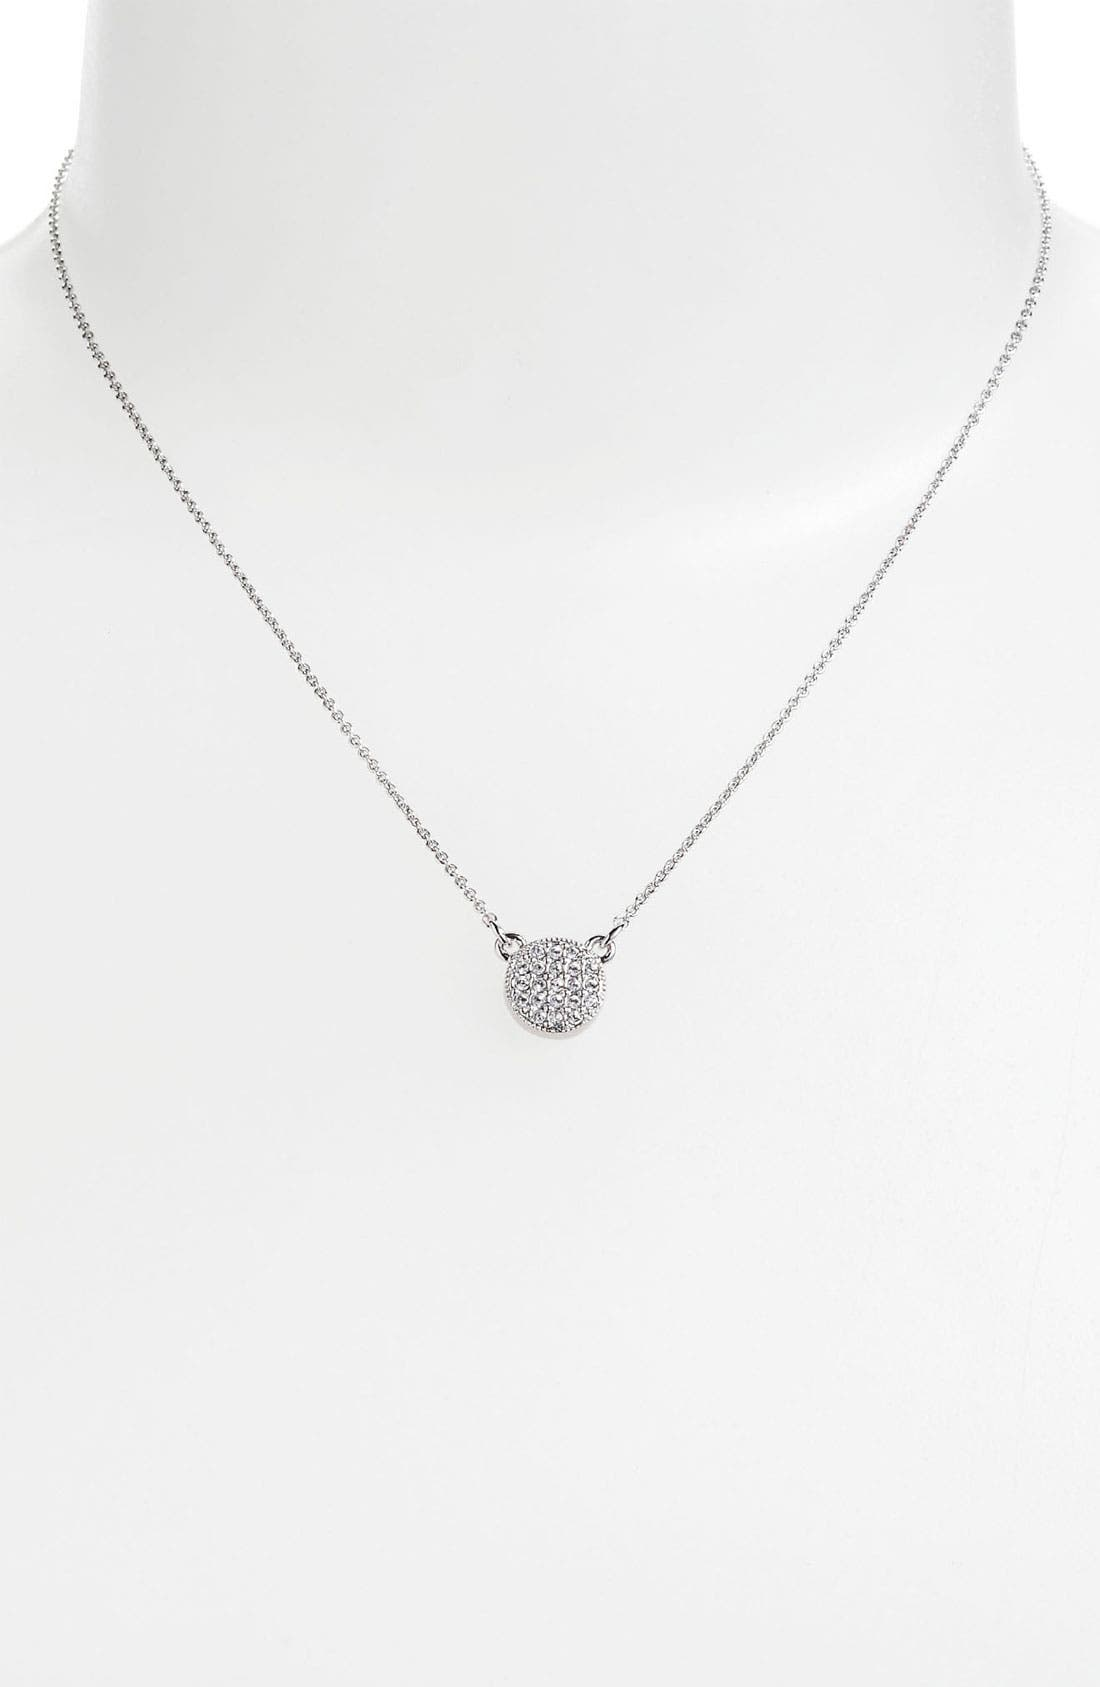 Main Image - kate spade new york 'bright spot' pendant necklace